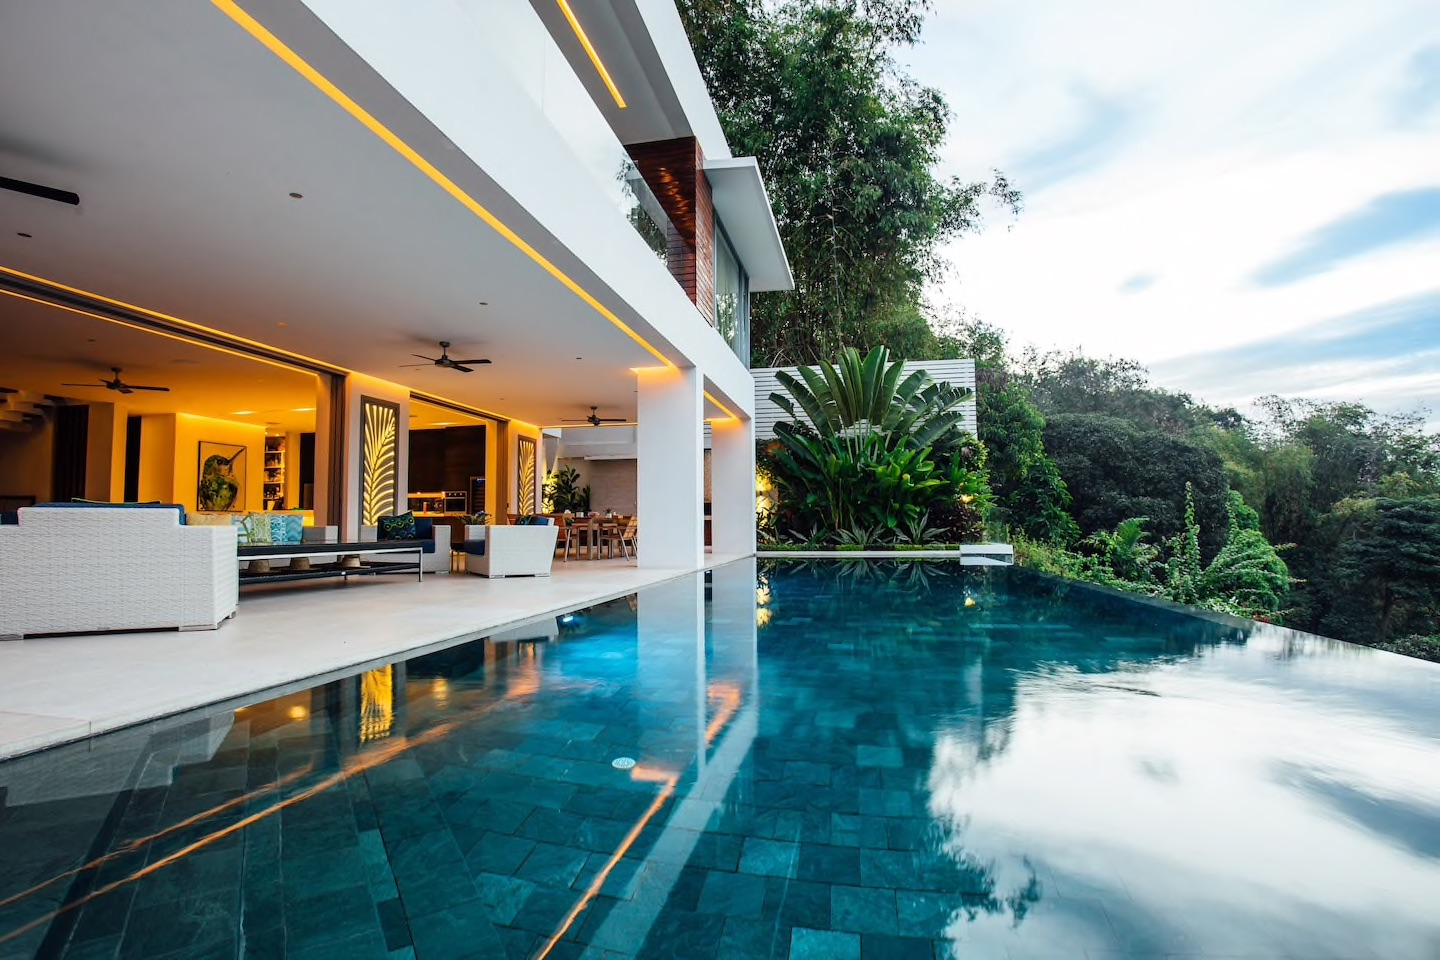 10 Cebu Airbnb Homes for a Relaxing Staycation